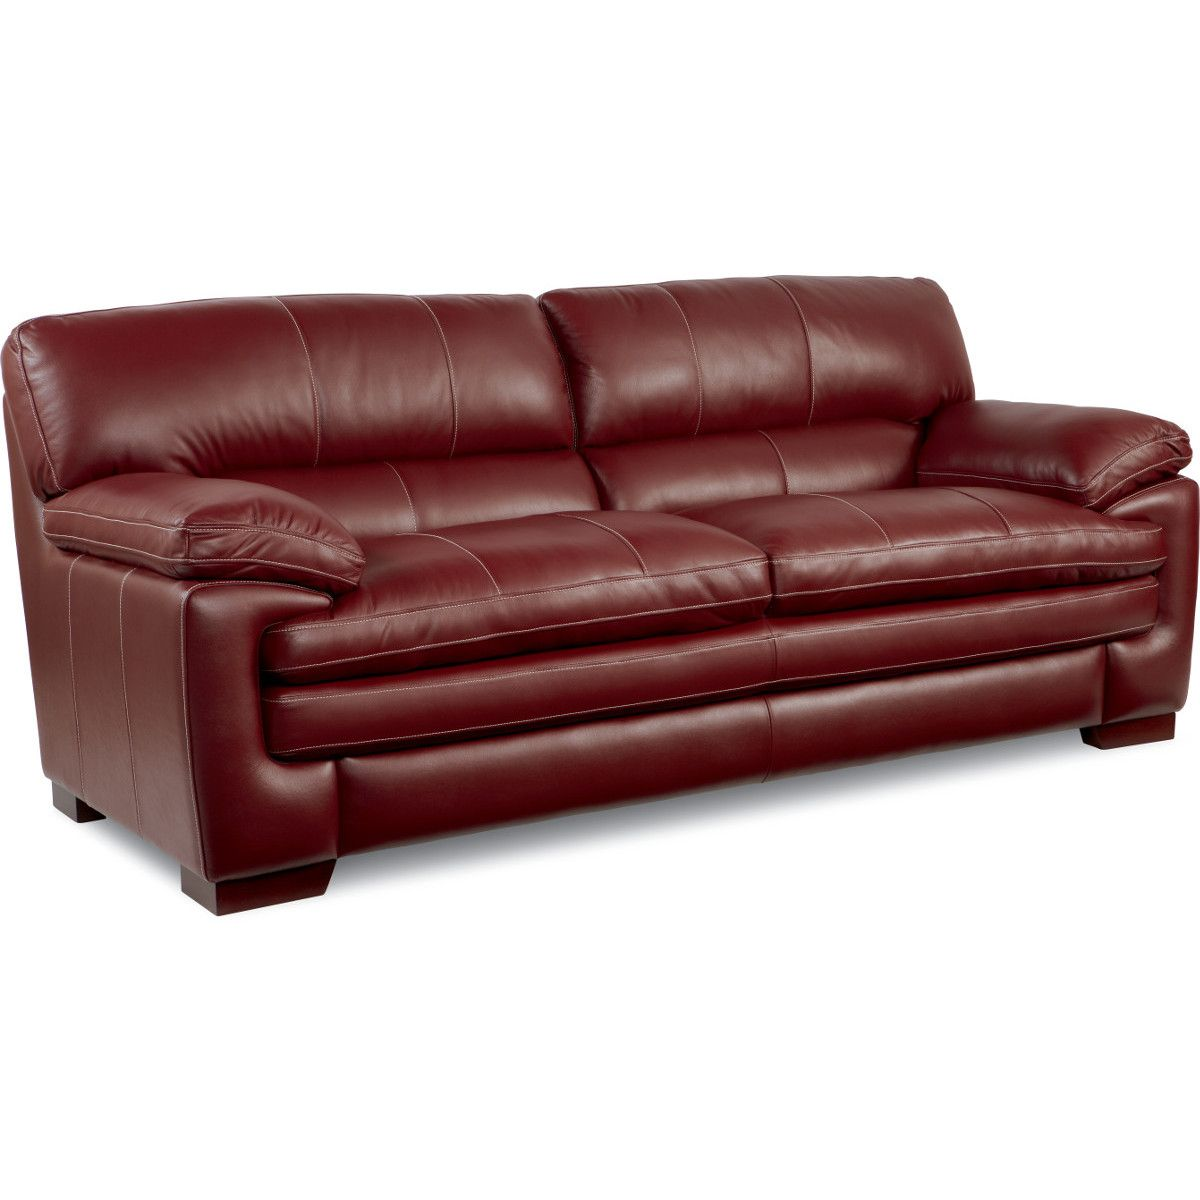 Lazy Boy Couches Leather | groovy furniture | Sofa, Leather ...